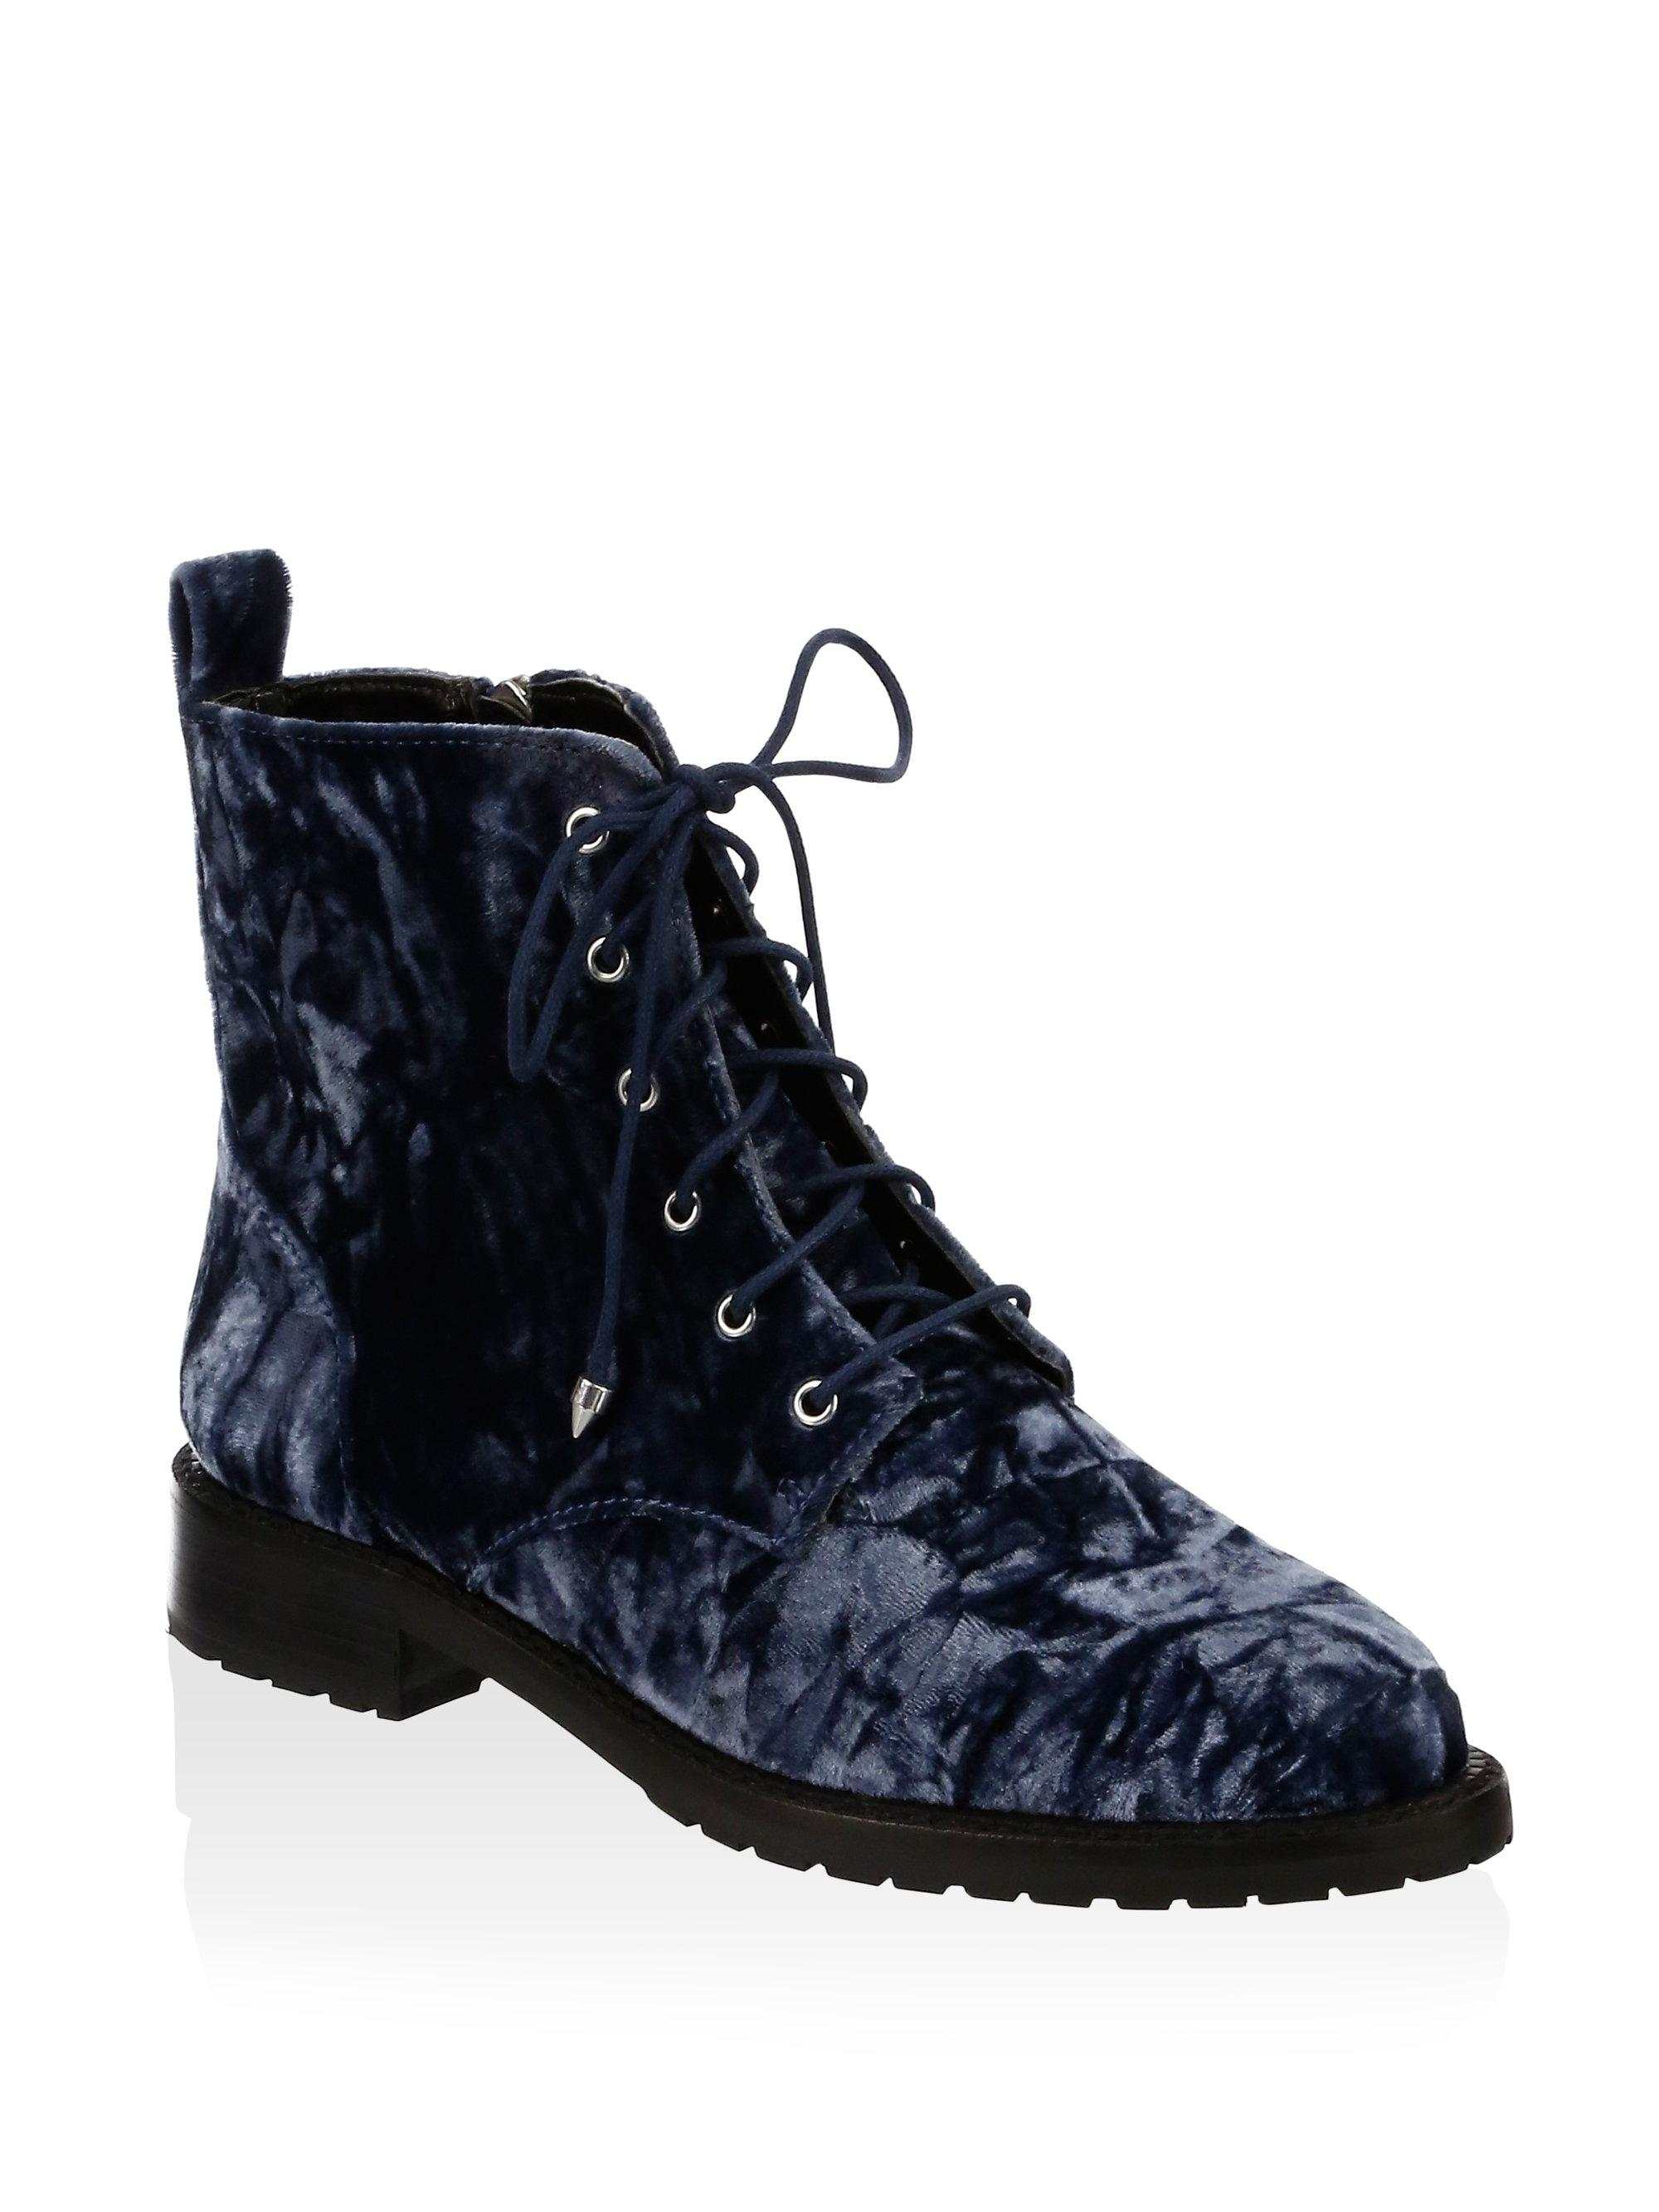 discount new arrival Rebecca Minkoff Velvet Combat Boots pay with paypal online outlet comfortable recommend online WP2KJIe